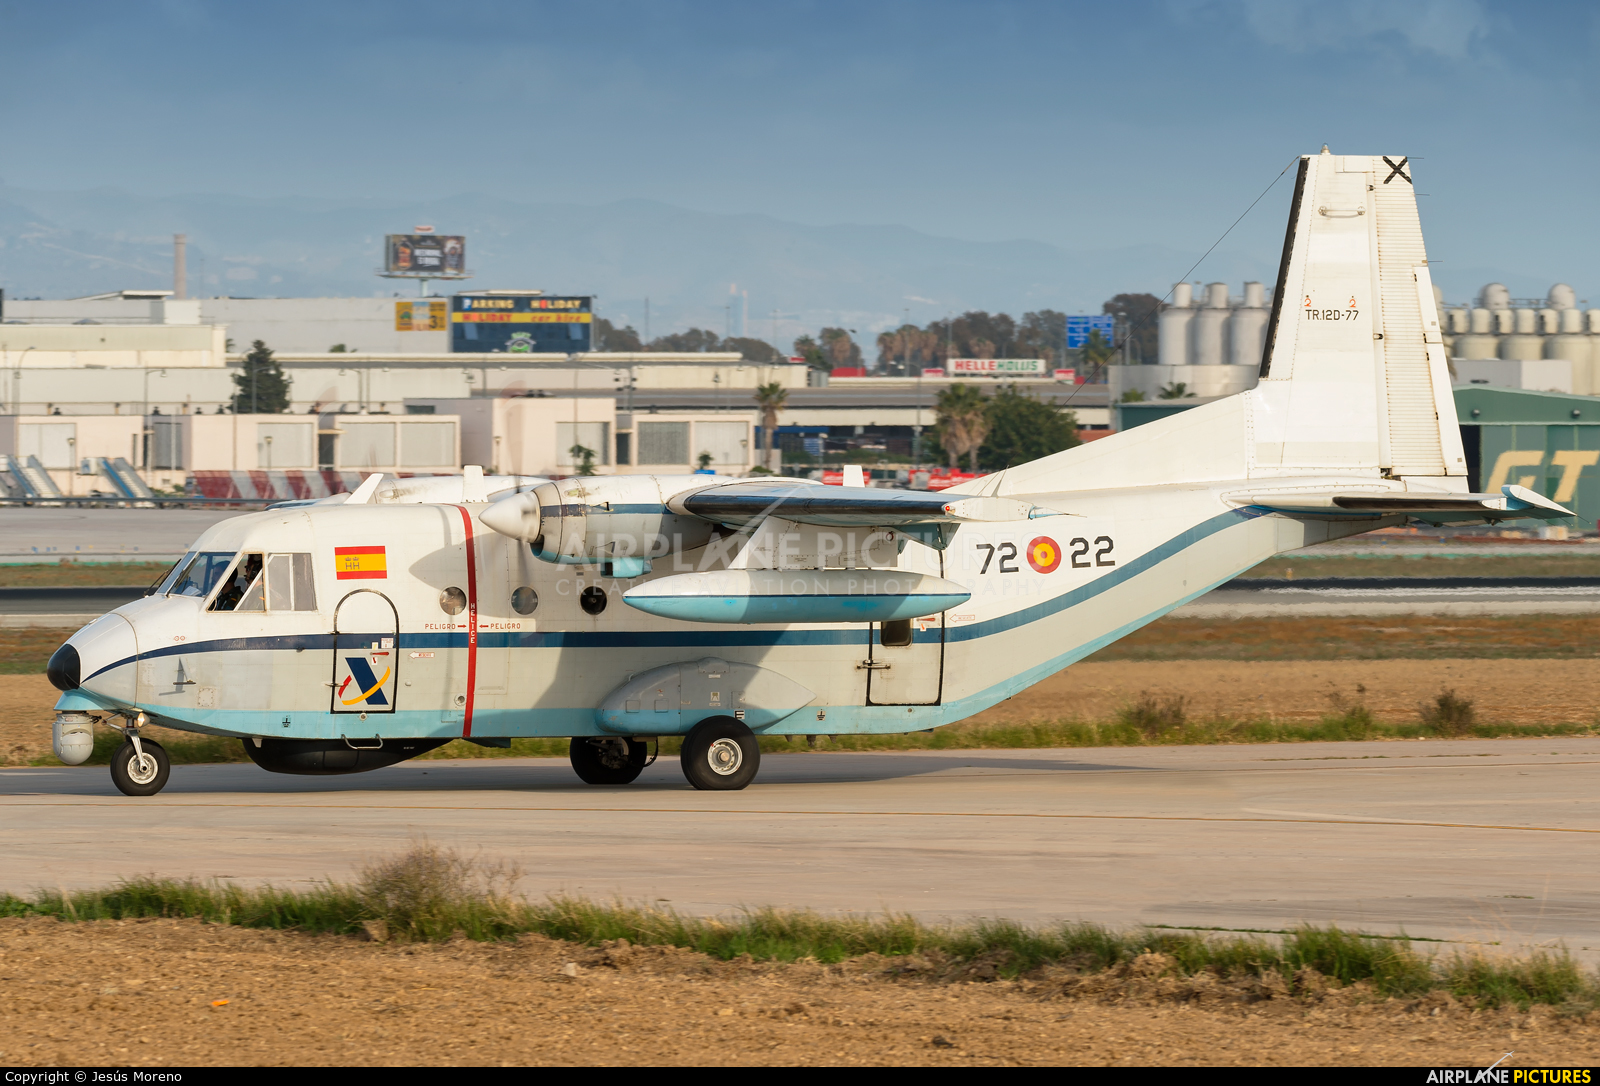 Spain - Air Force TR.12D-77 aircraft at Málaga